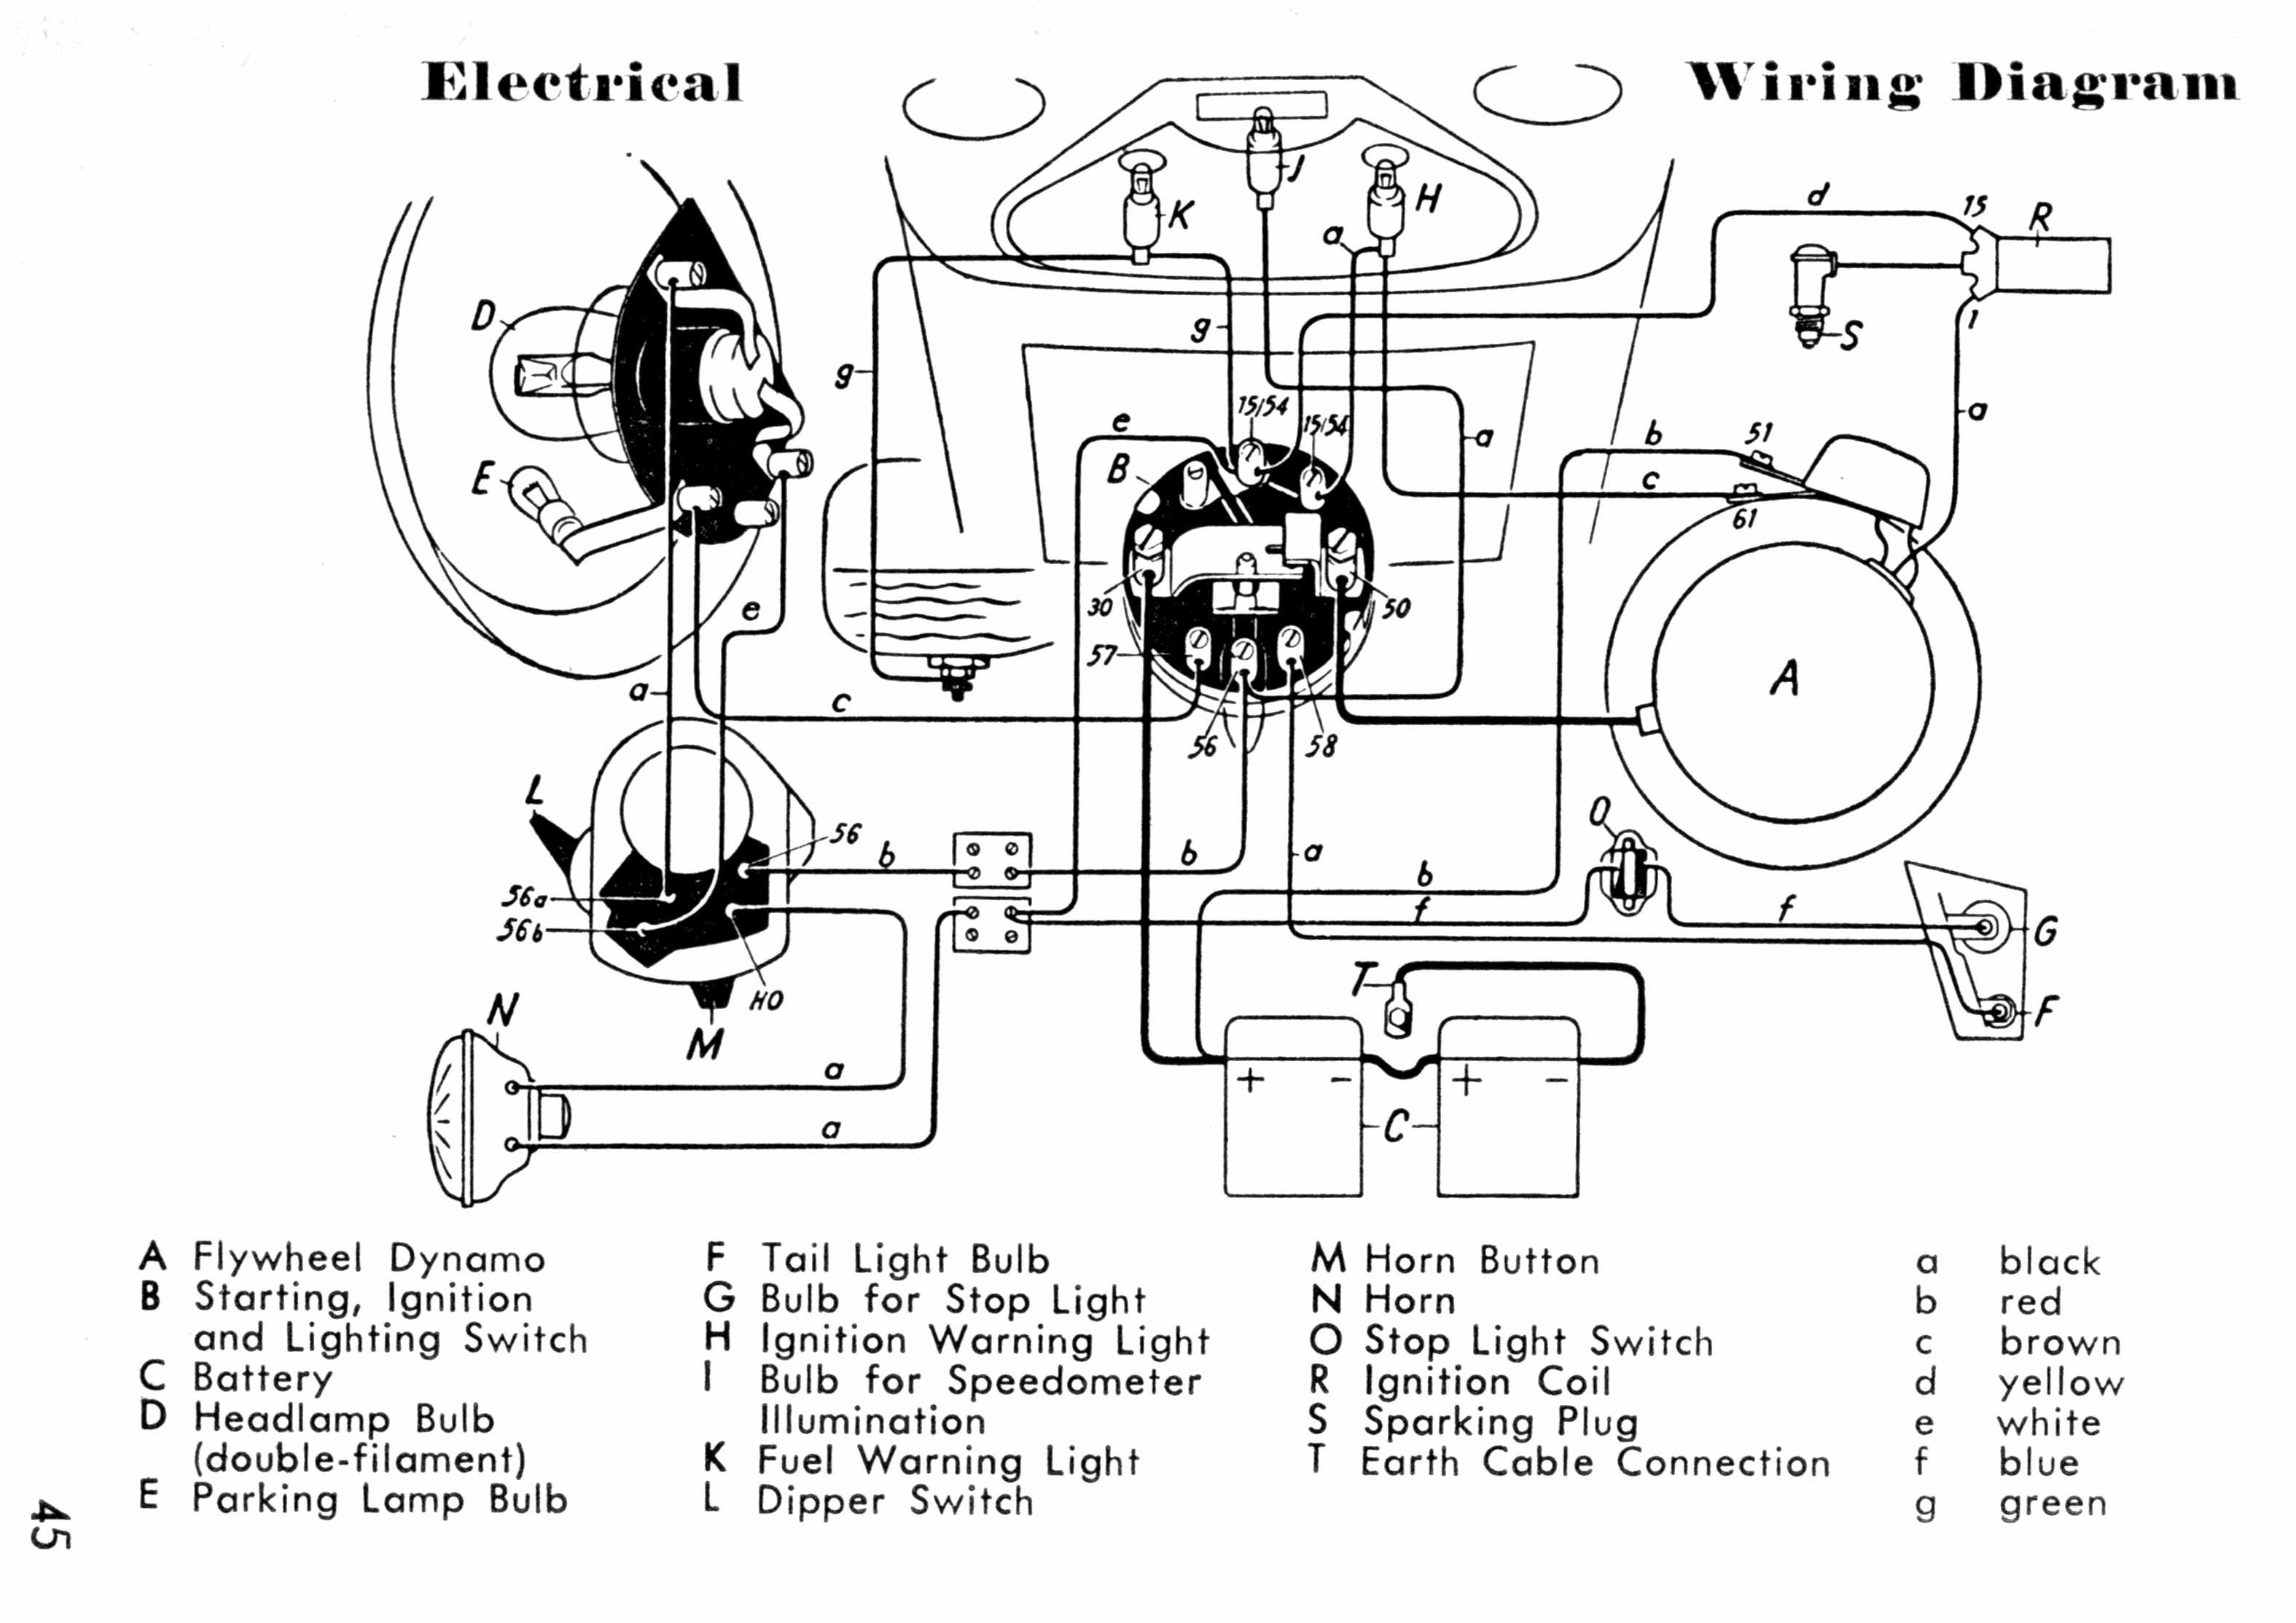 schematic electric scooter wiring diagram closet motorcycle Mobility Scooter Wiring Diagram